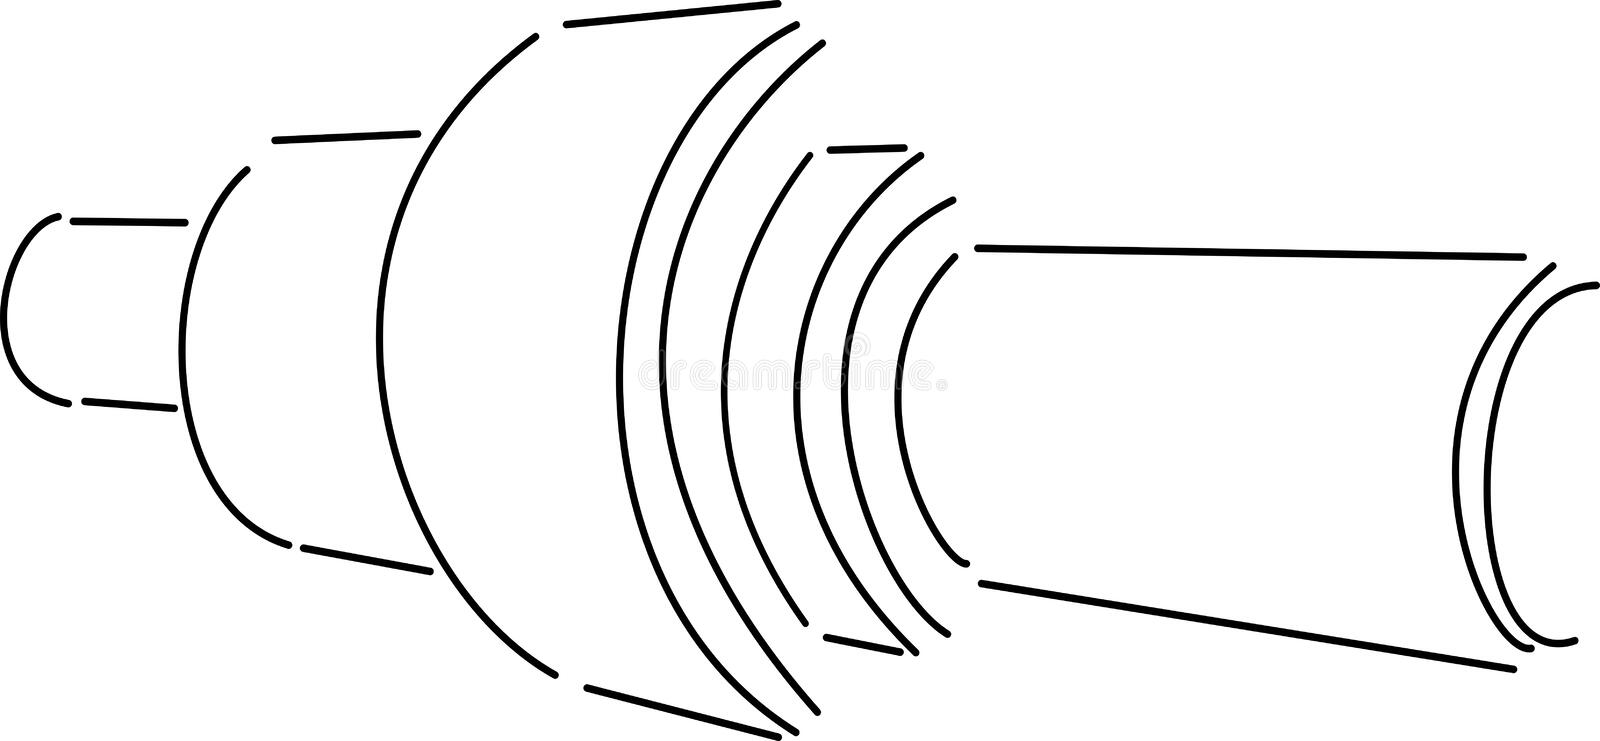 The Shaft. Simple steel shaft isometric view vector illustration